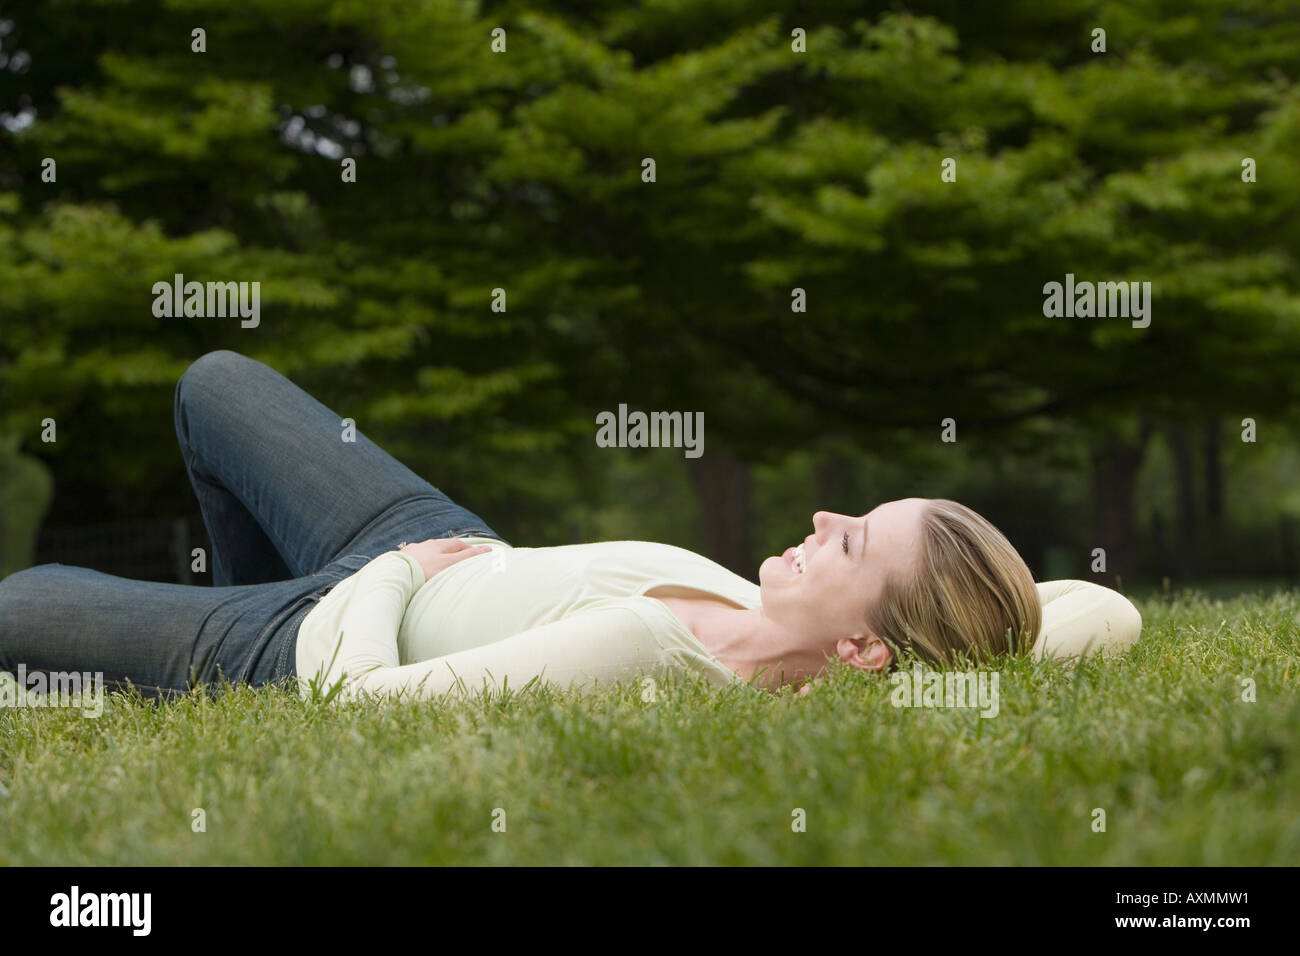 Pretty young woman lying on grass - Stock Image